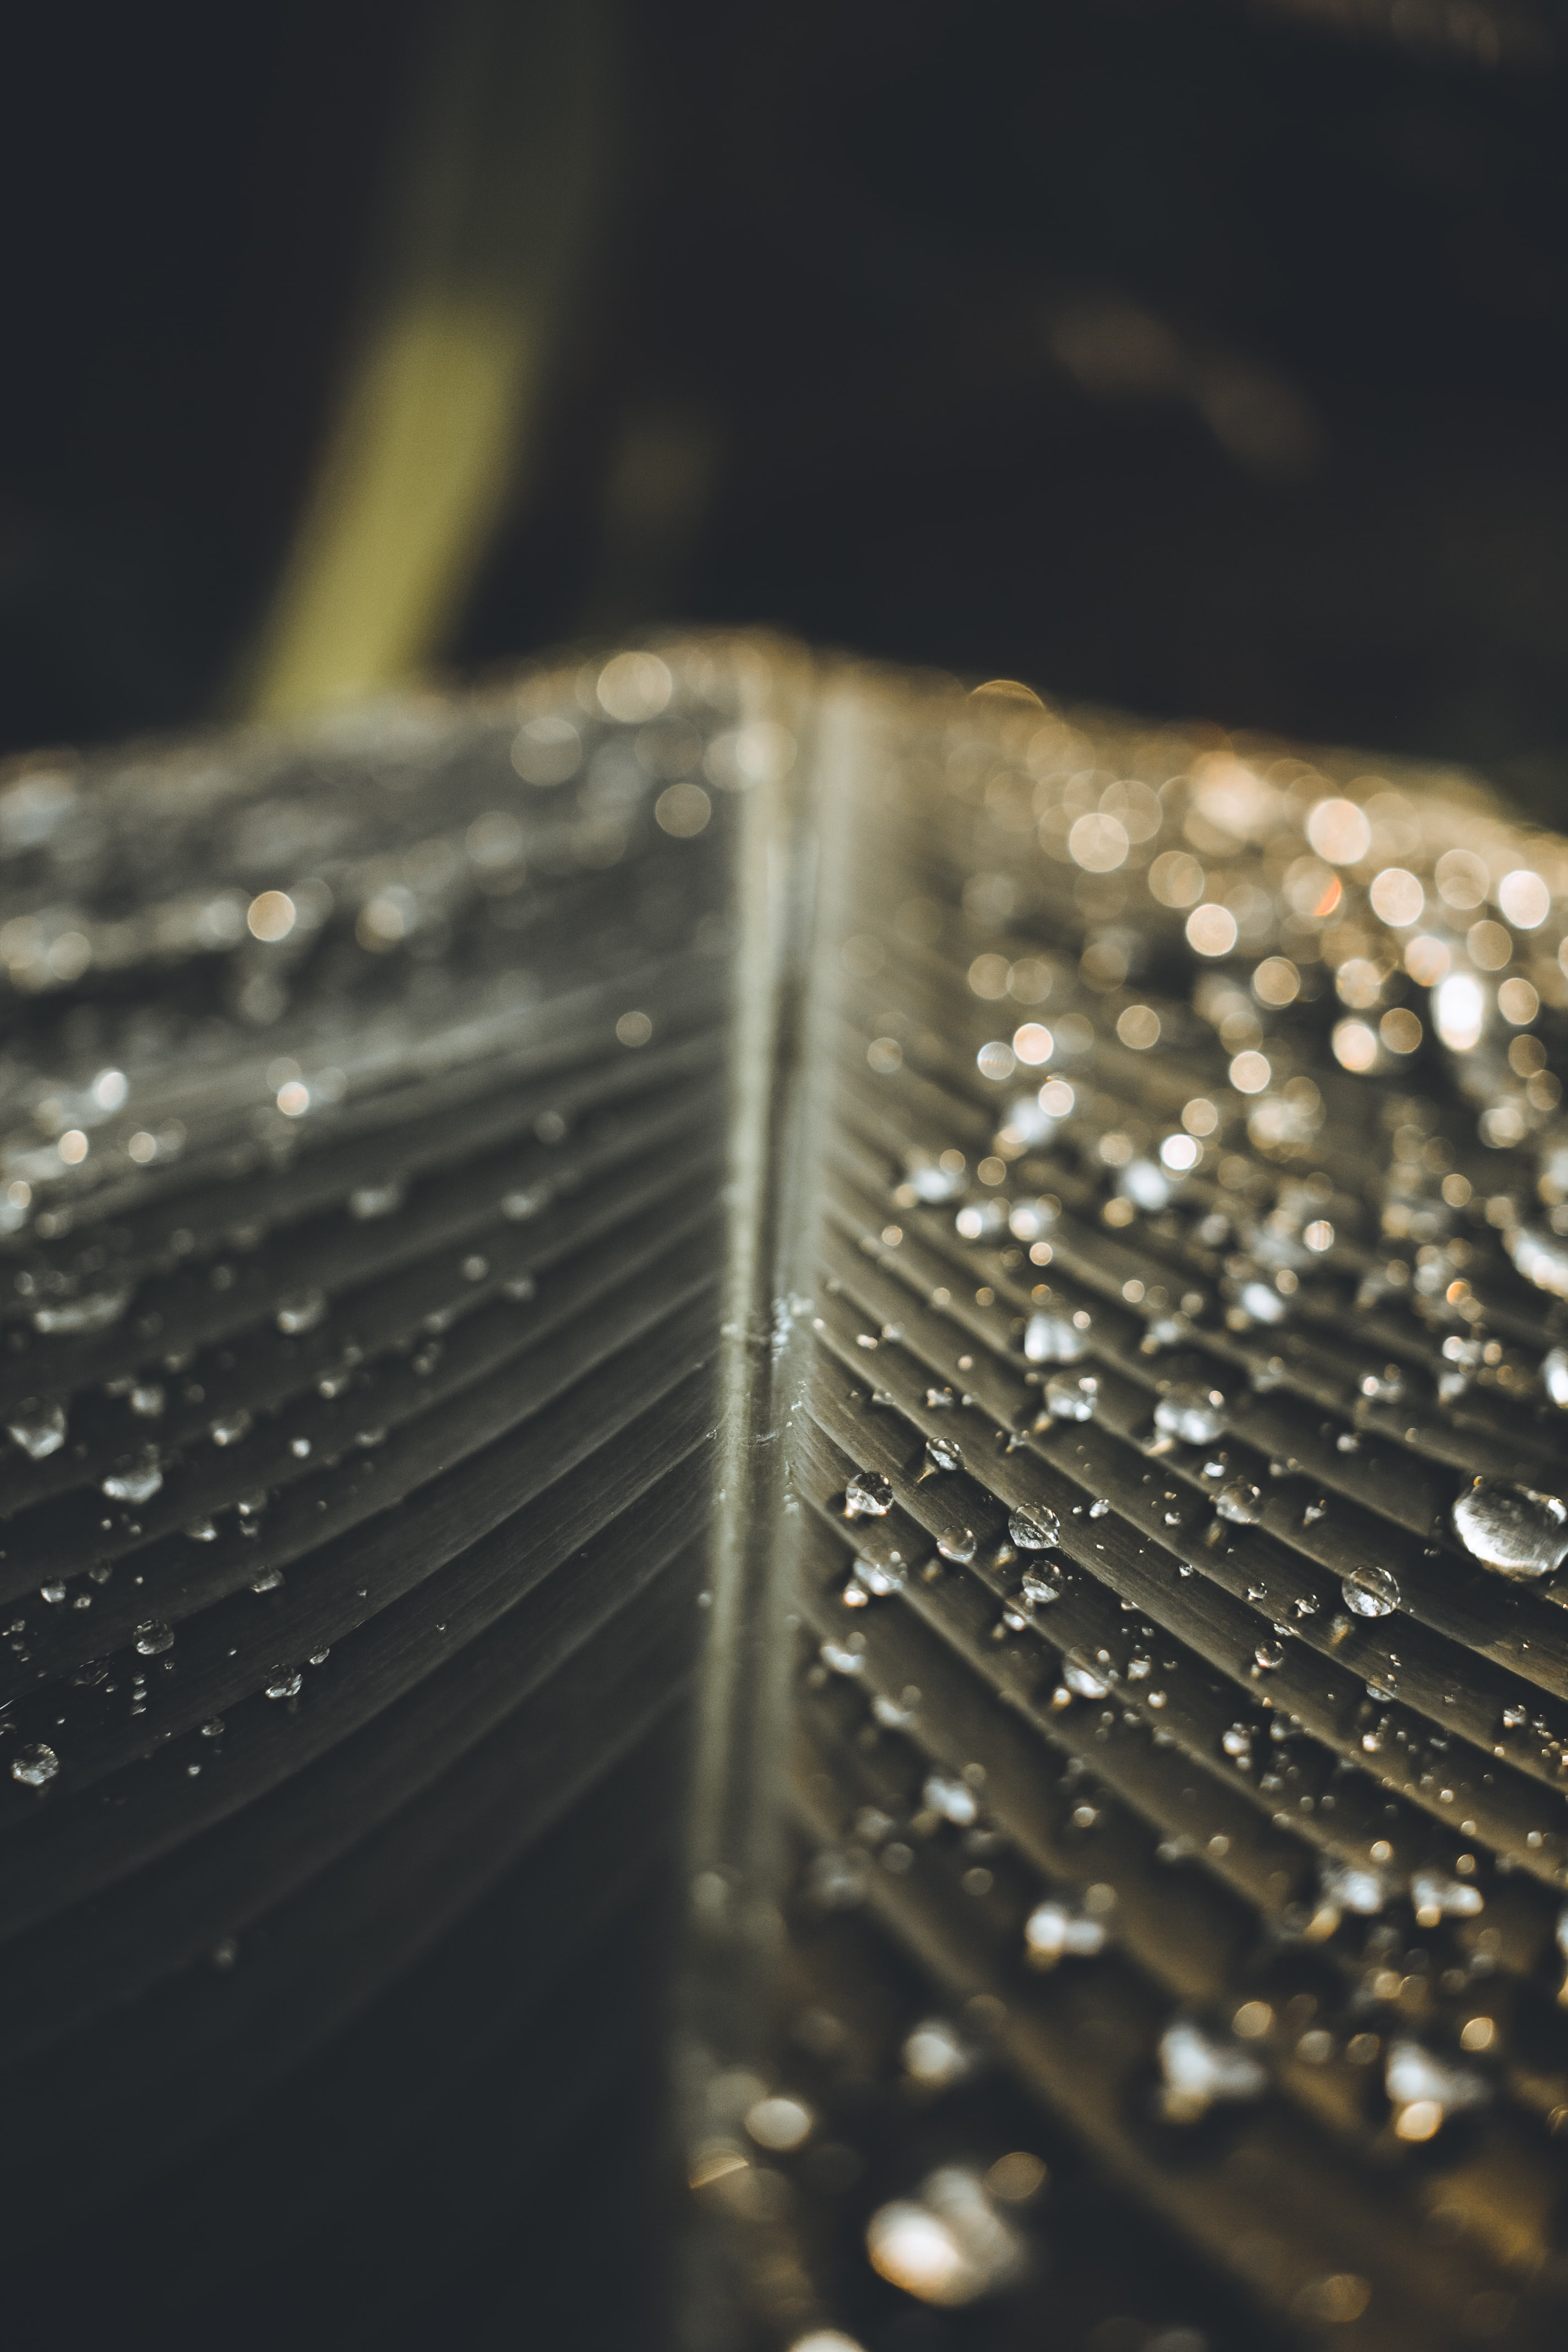 139637 download wallpaper Macro, Sheet, Leaf, Drops, Wet screensavers and pictures for free